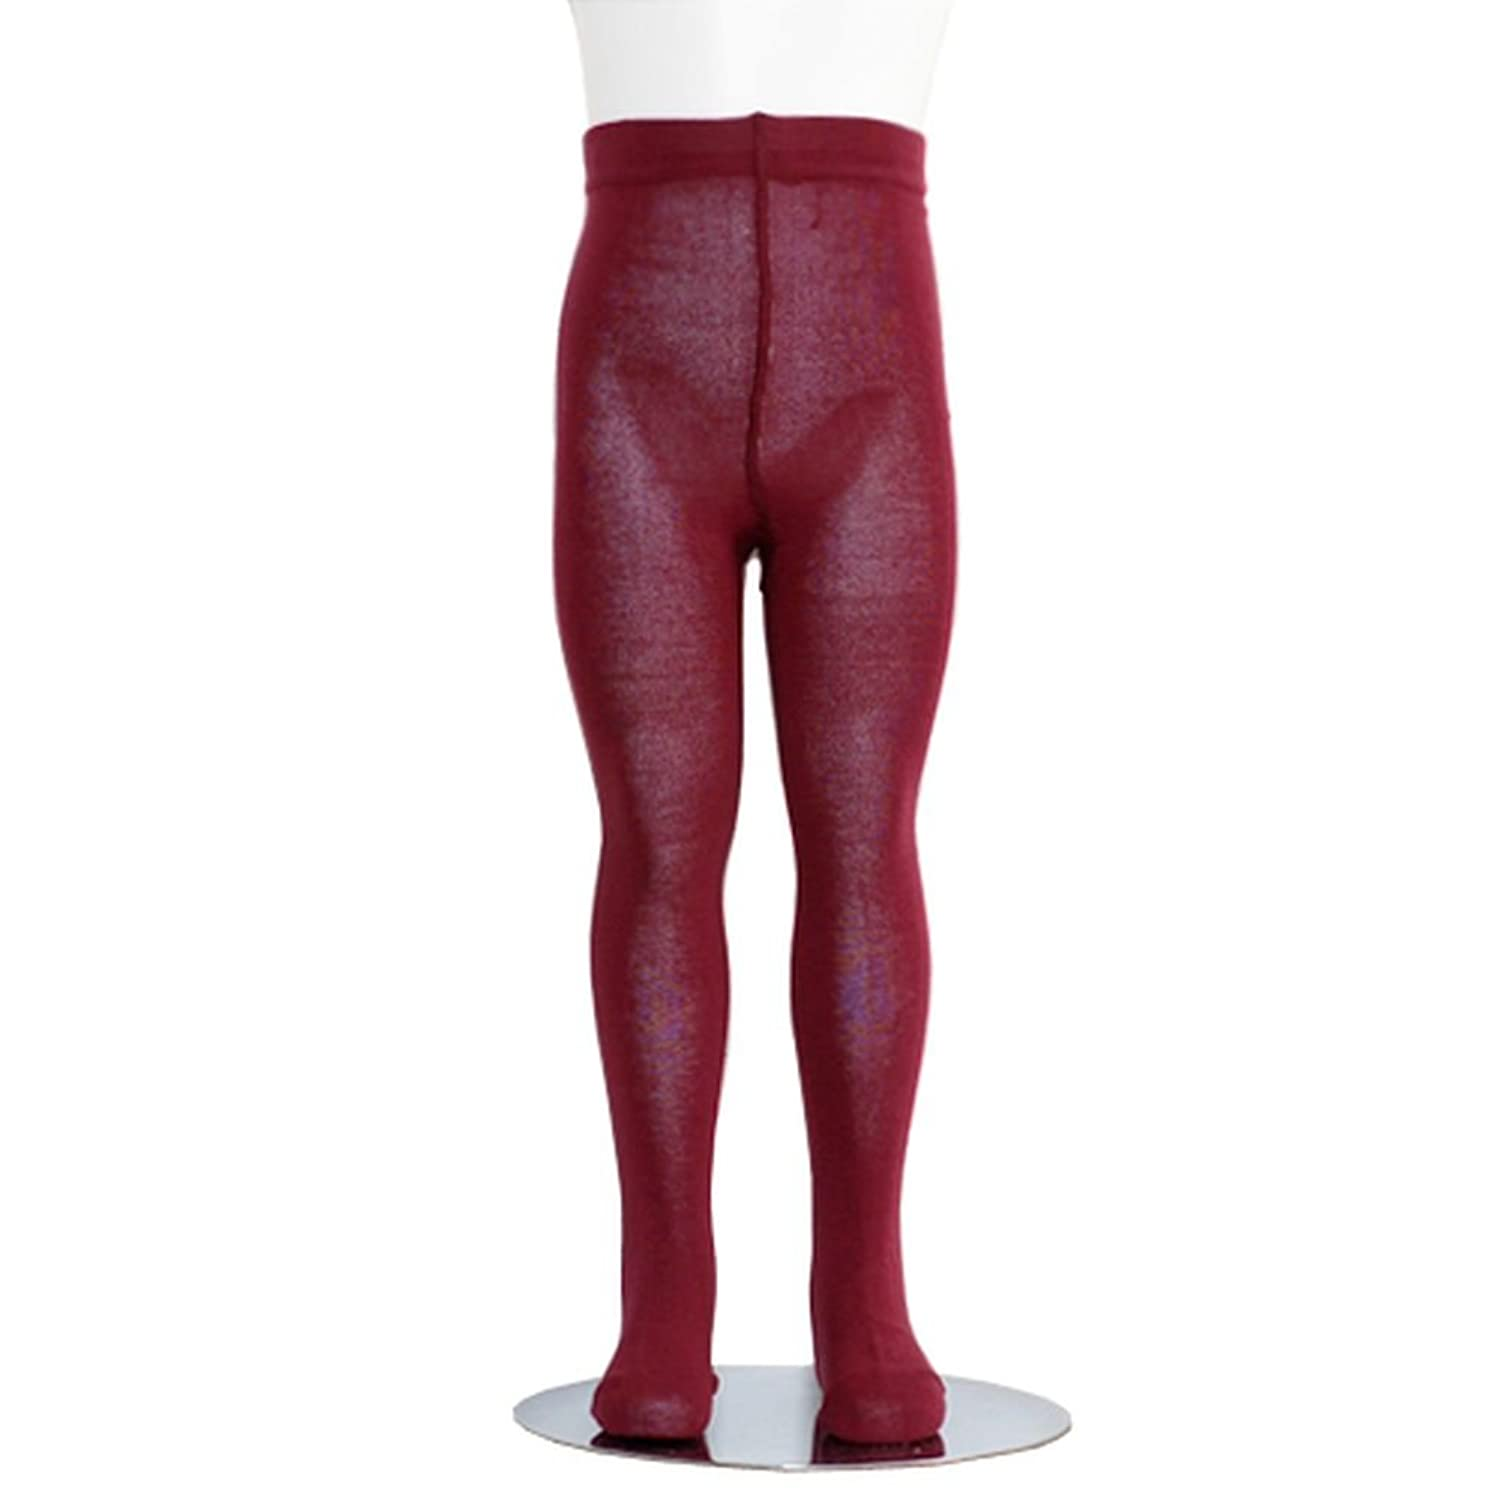 amazoncom burgundy piccolo heavyweight opaque toddler little girls tights 2t 16 kids winter tights red clothing